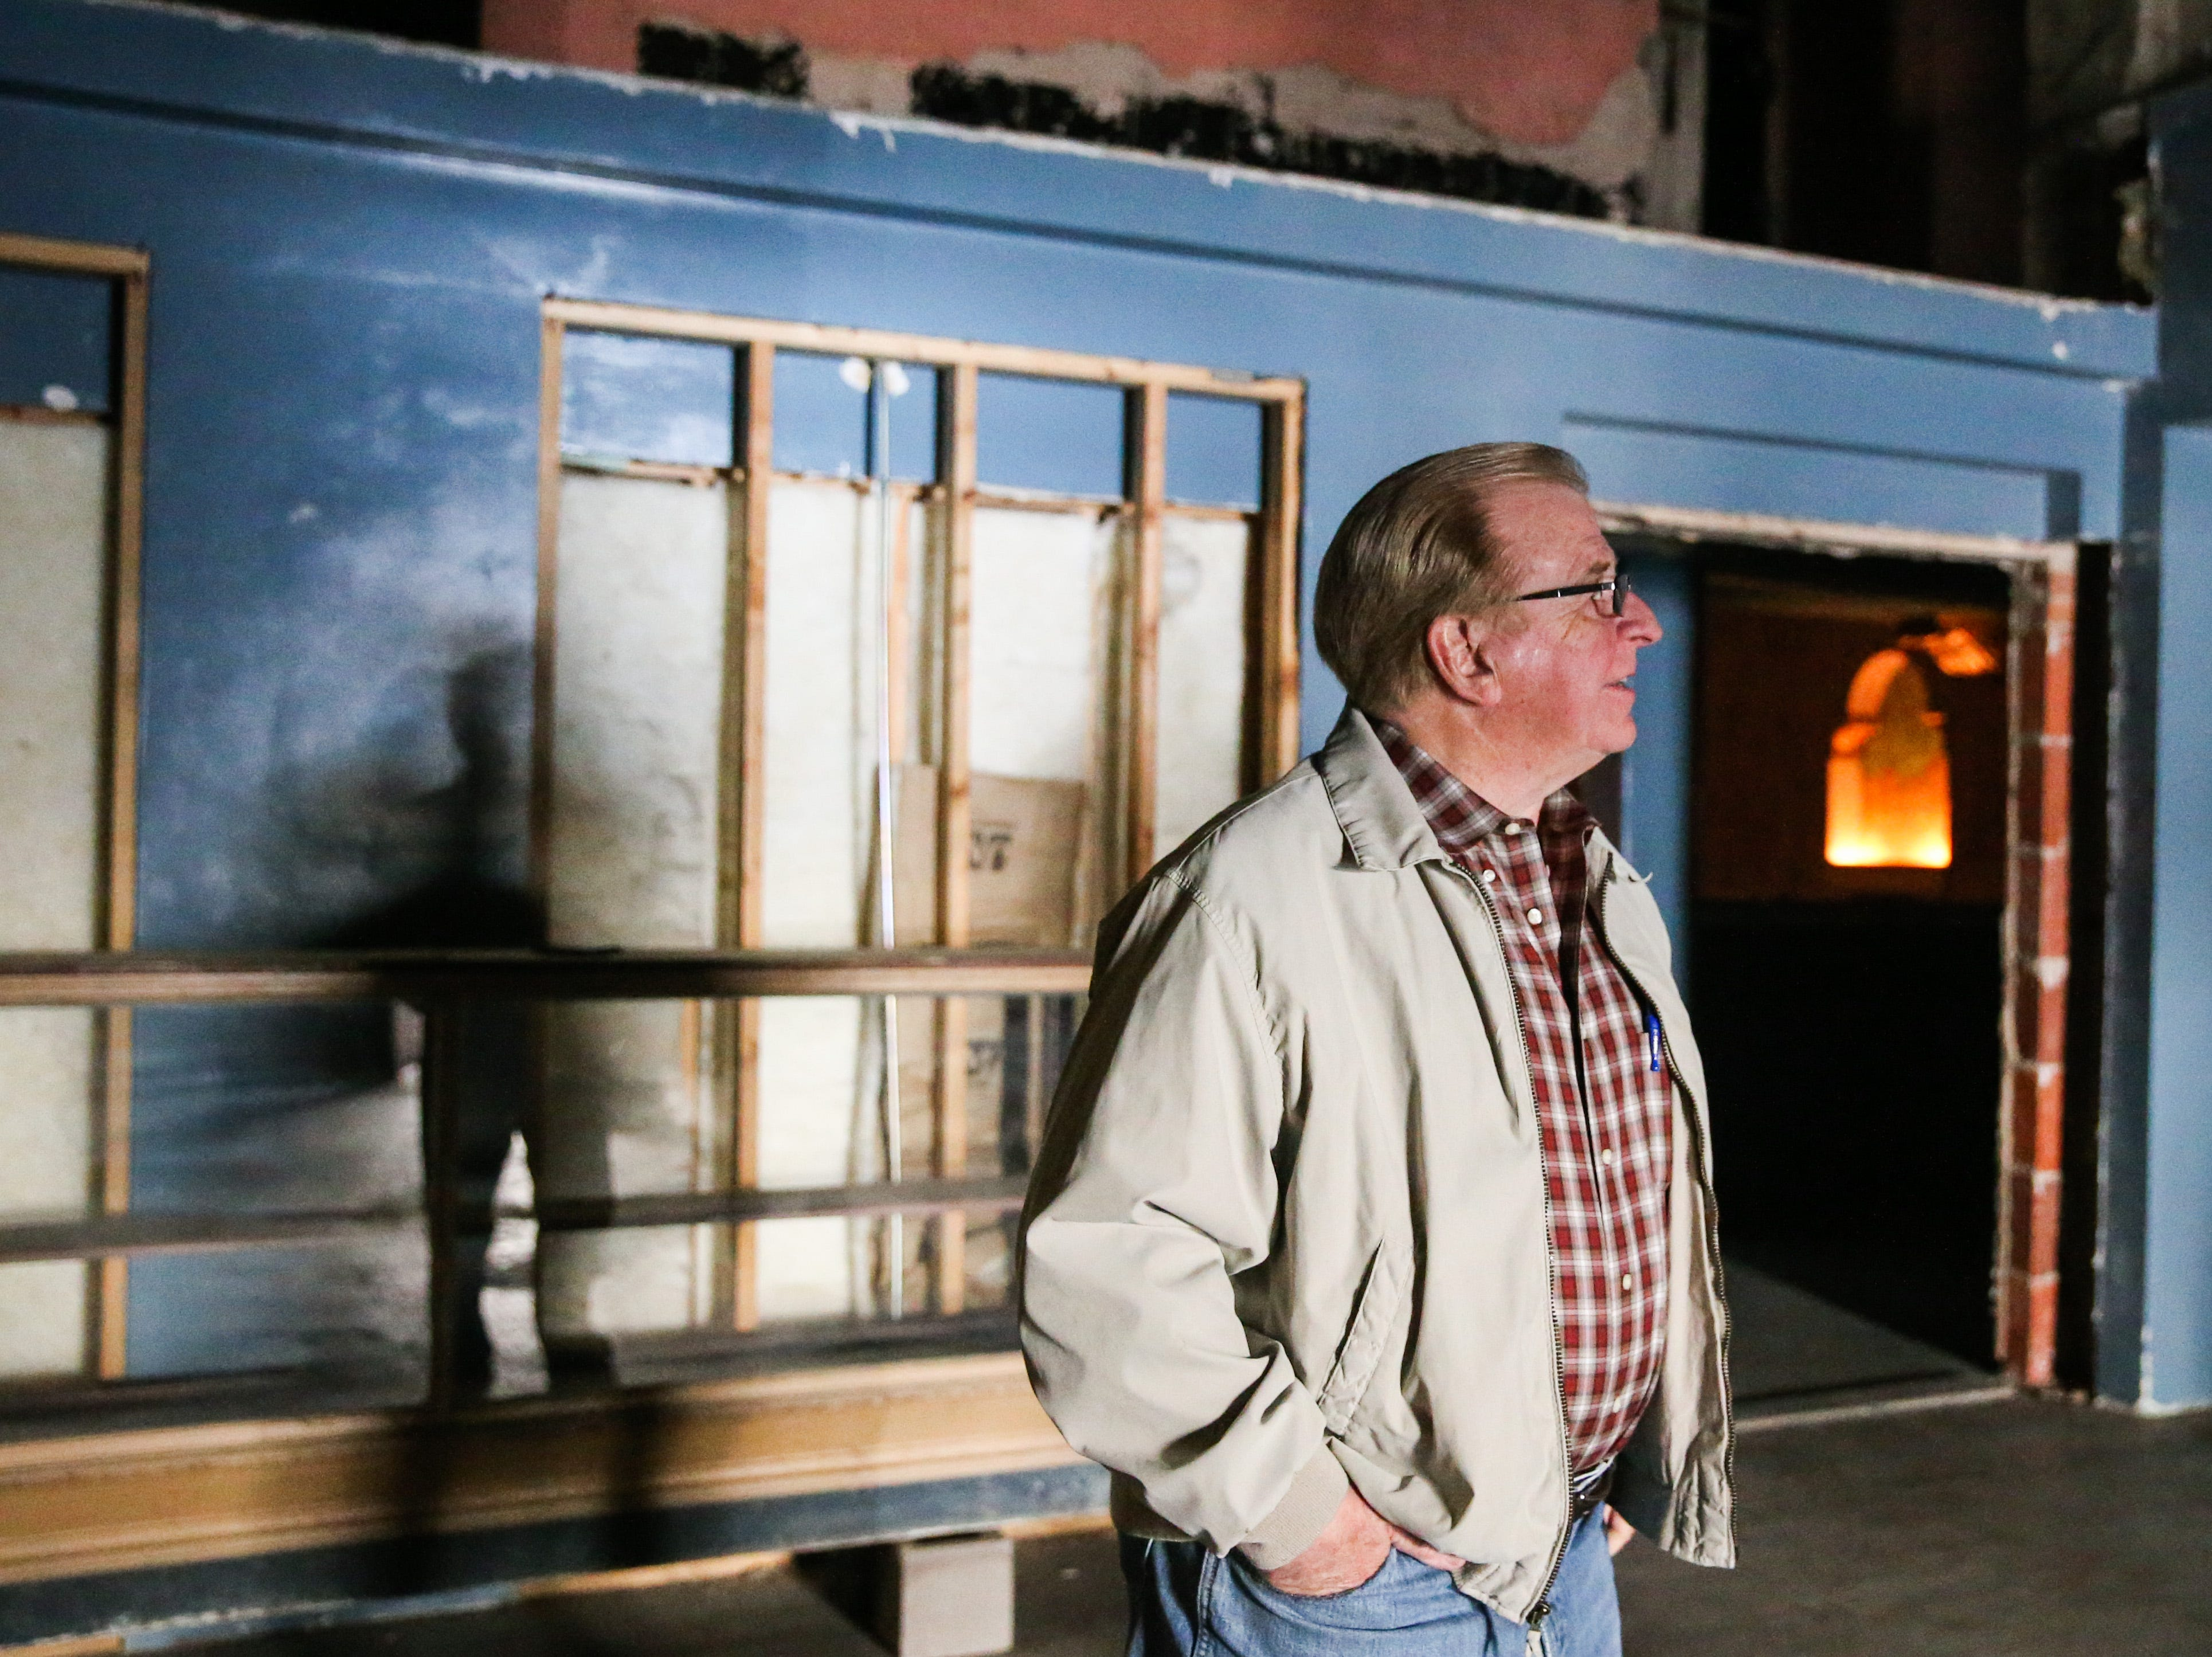 Lee Pfluger walks around the lobby Thursday, Jan. 24, 2019, at former Texas Theatre. Pfluger purchased the building in 1998.